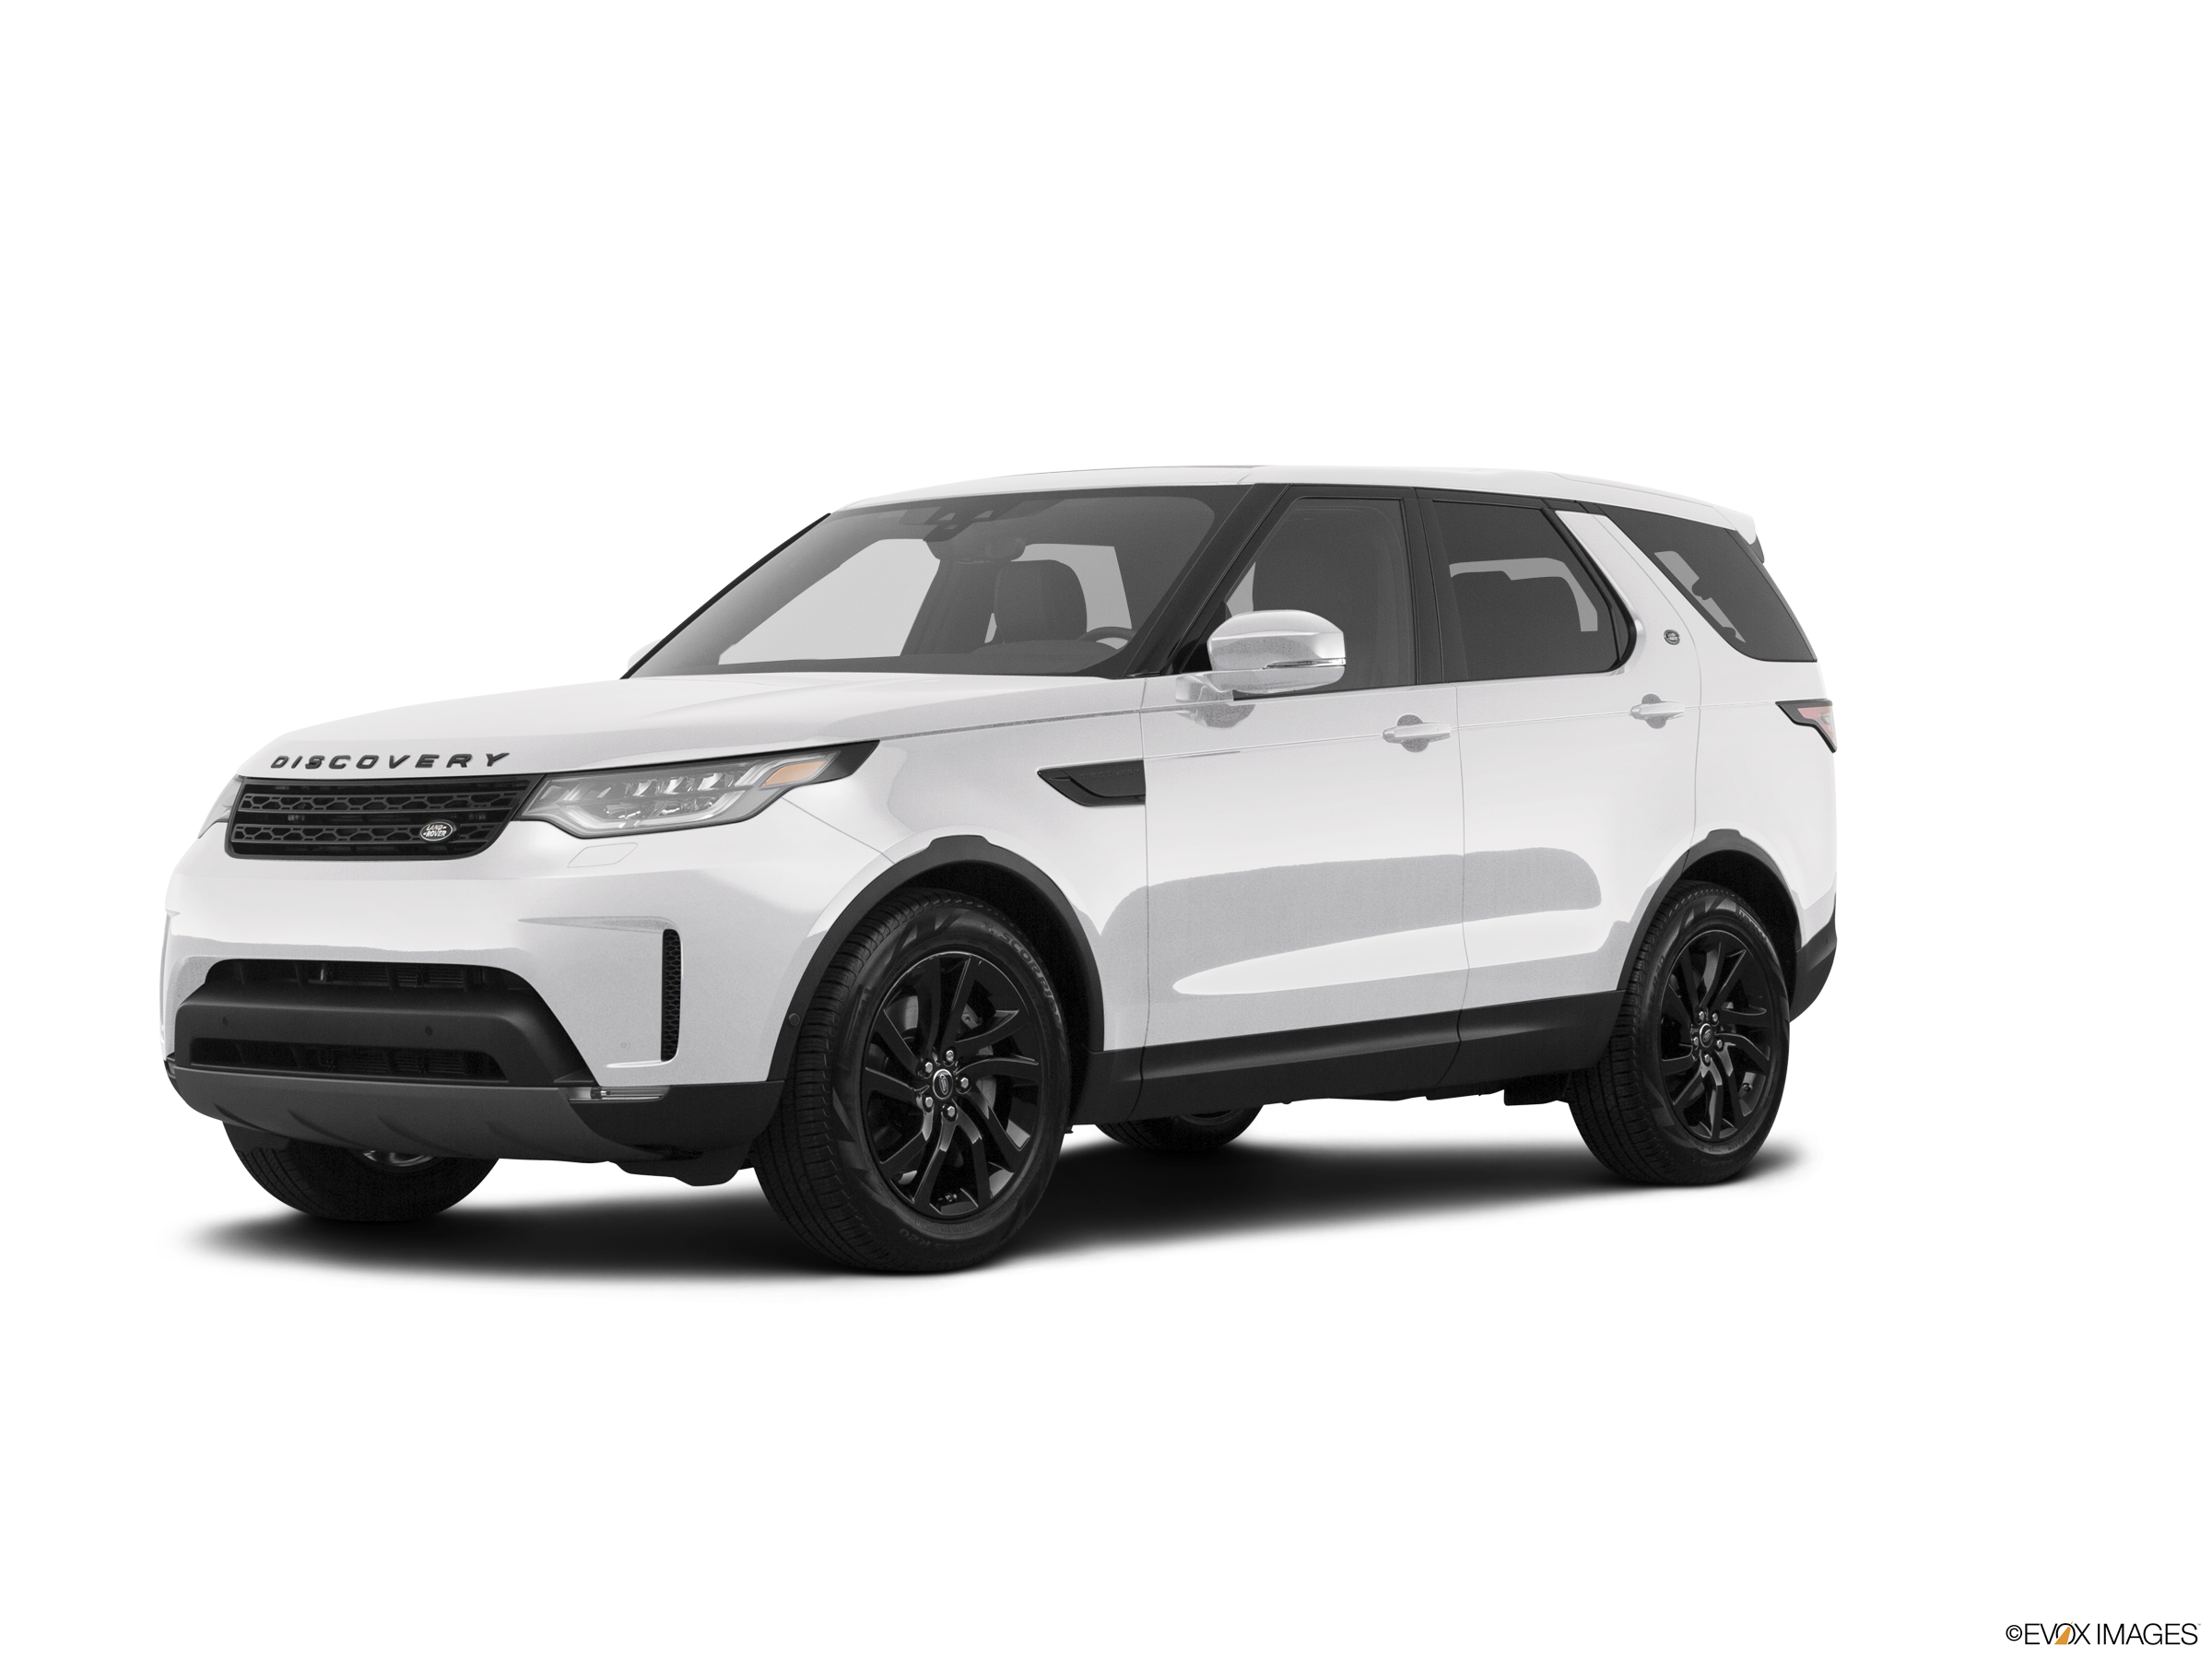 2020 Land Rover Discovery Prices Reviews Pictures Kelley Blue Book